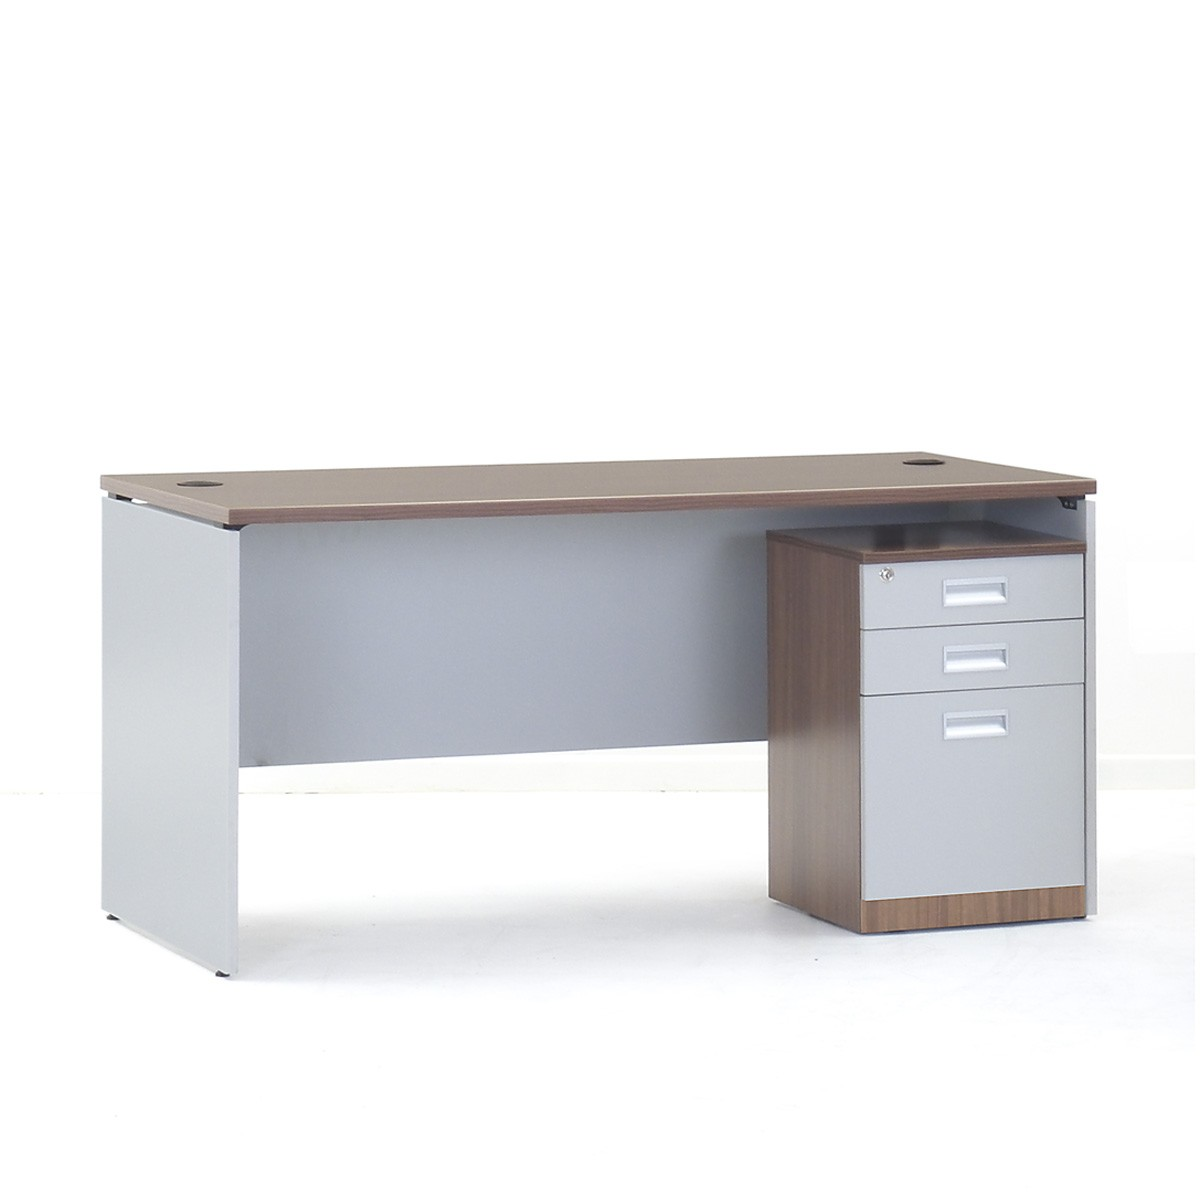 Buy Versaline Table with Pedestal Cabin Online at